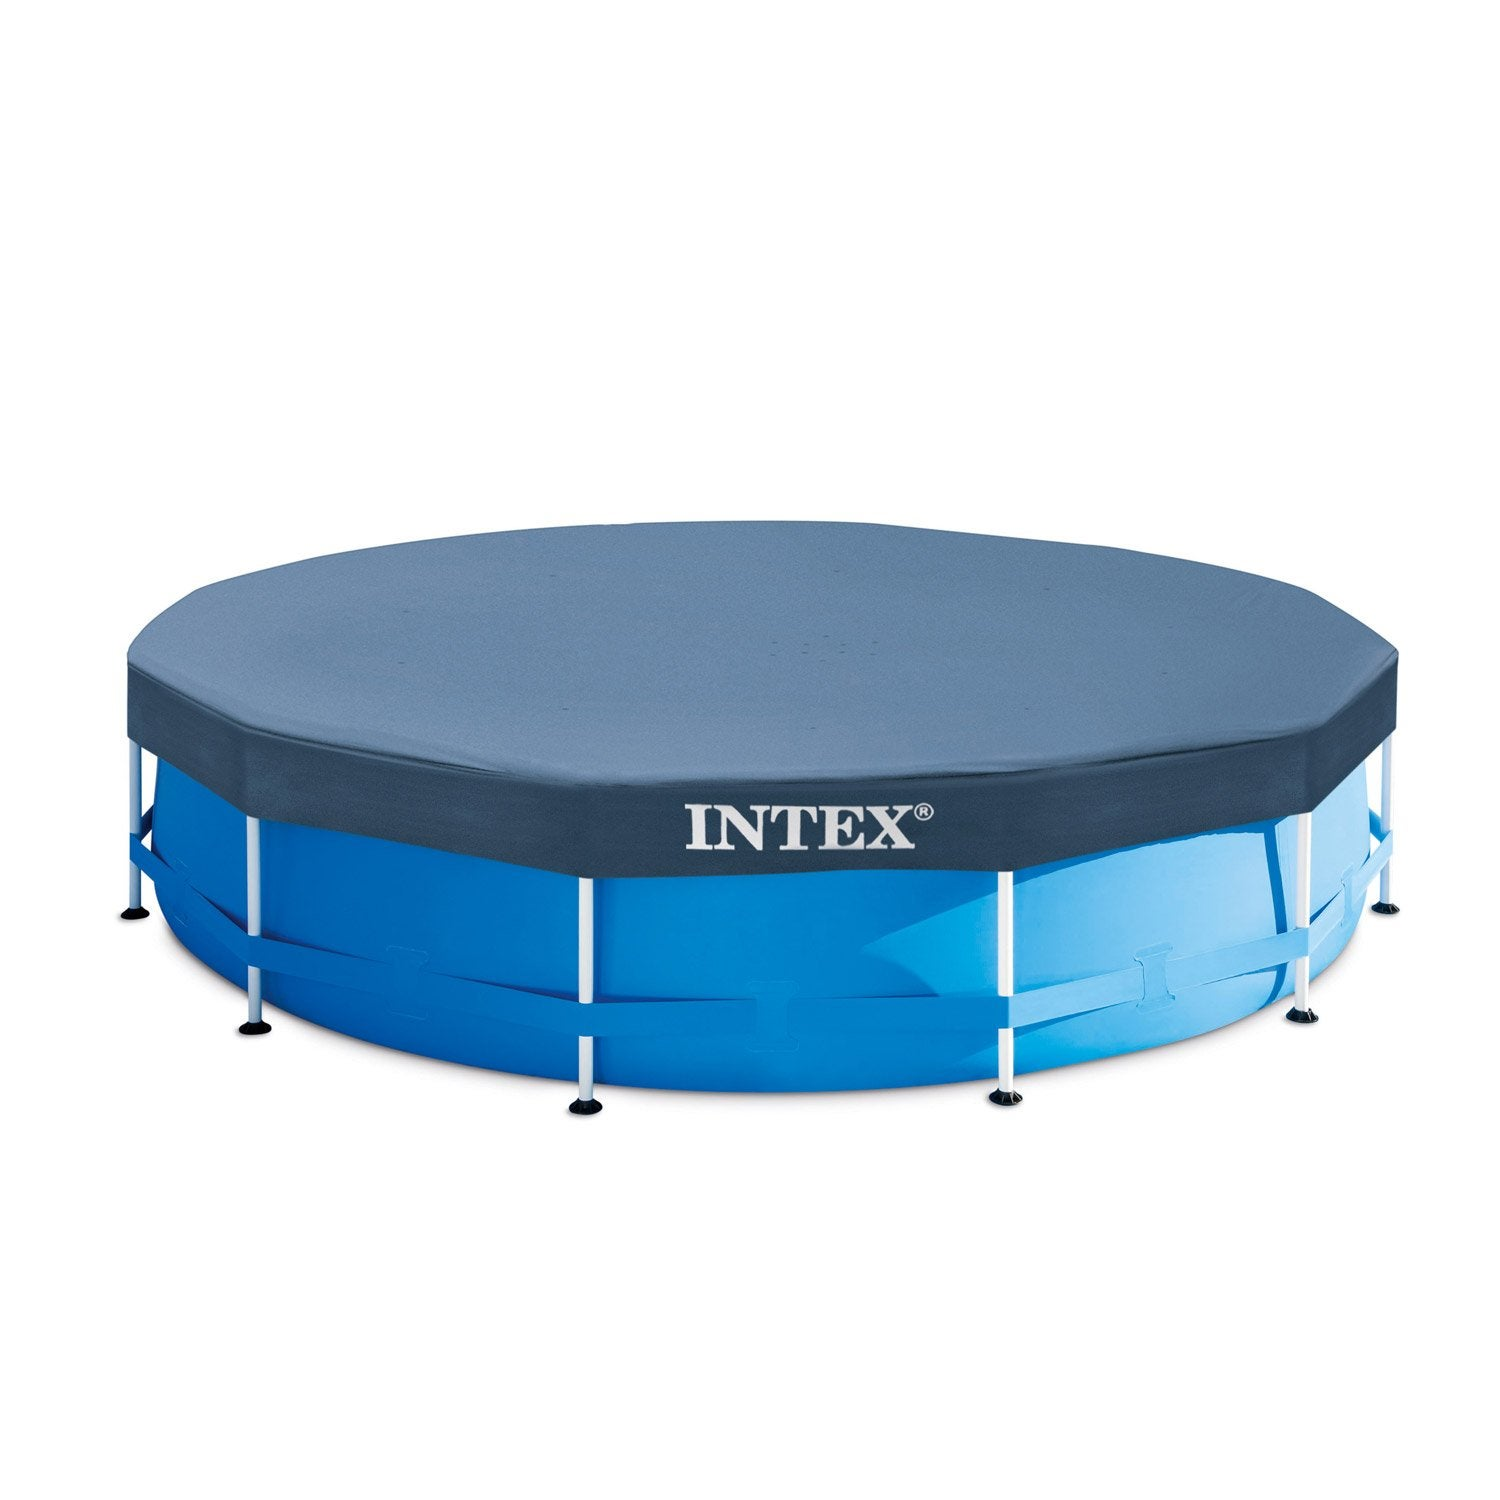 B che hiver intex de protection pour piscine ronde 3m66 - Bache pour piscine intex 3 66 ...